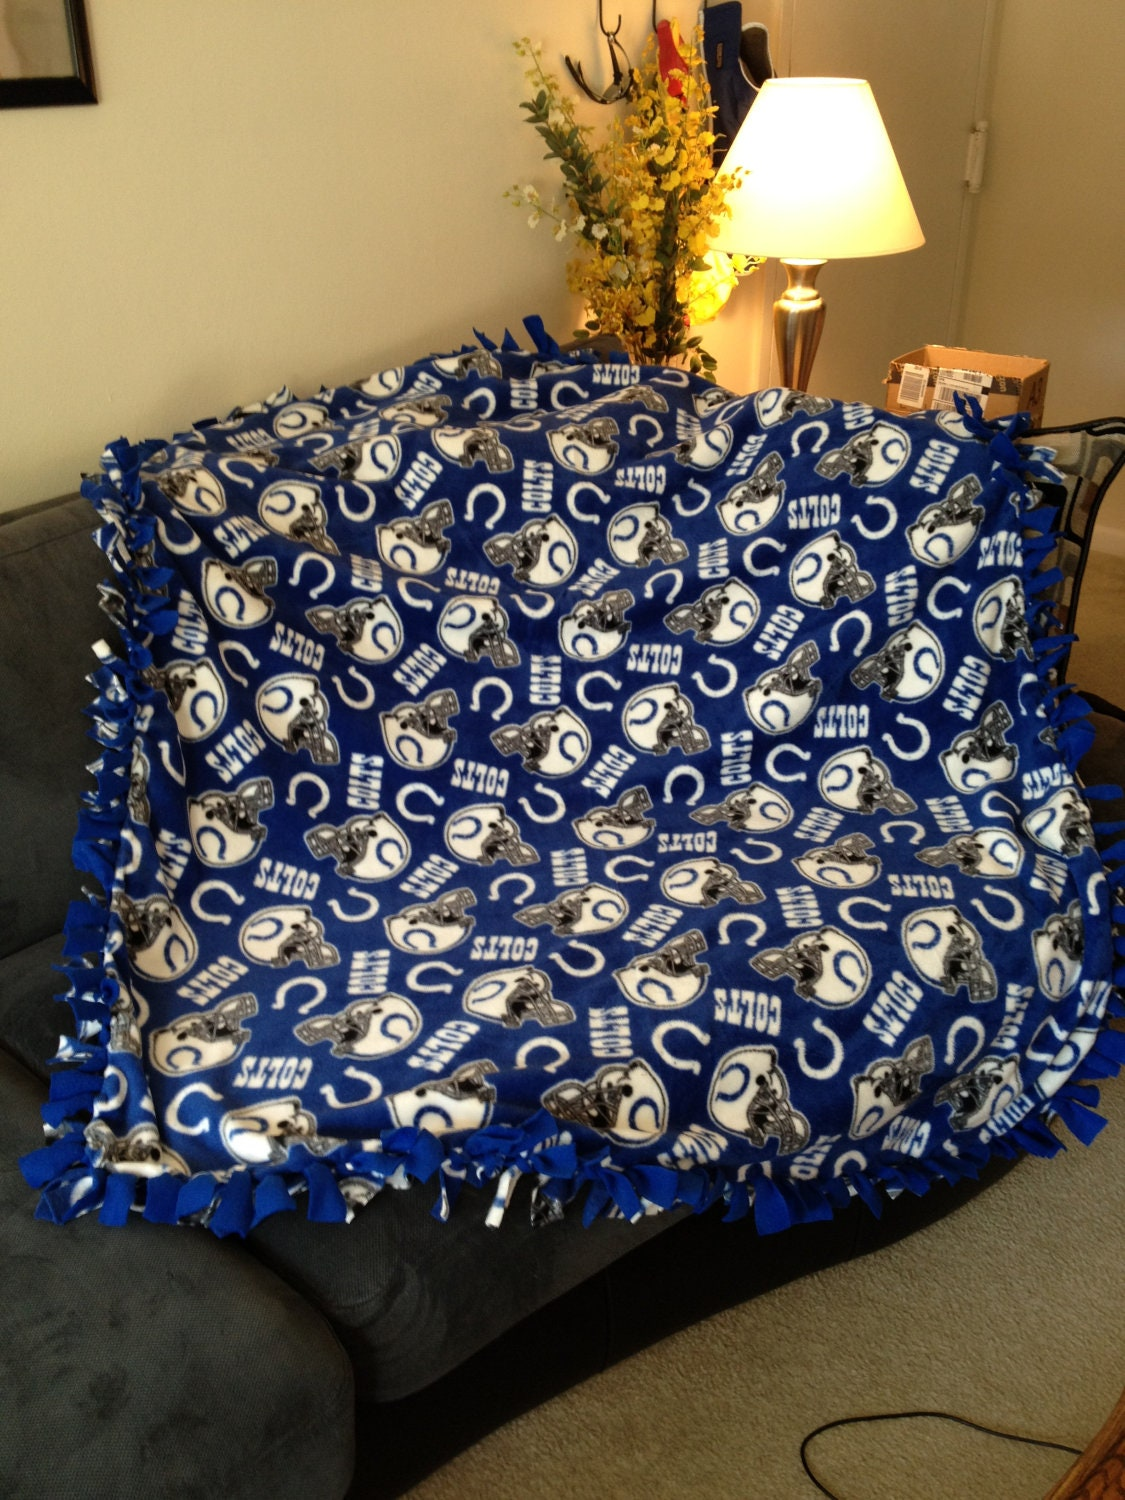 Indianapolis Colts Blanket Nfl Football By Blanketsunlimited